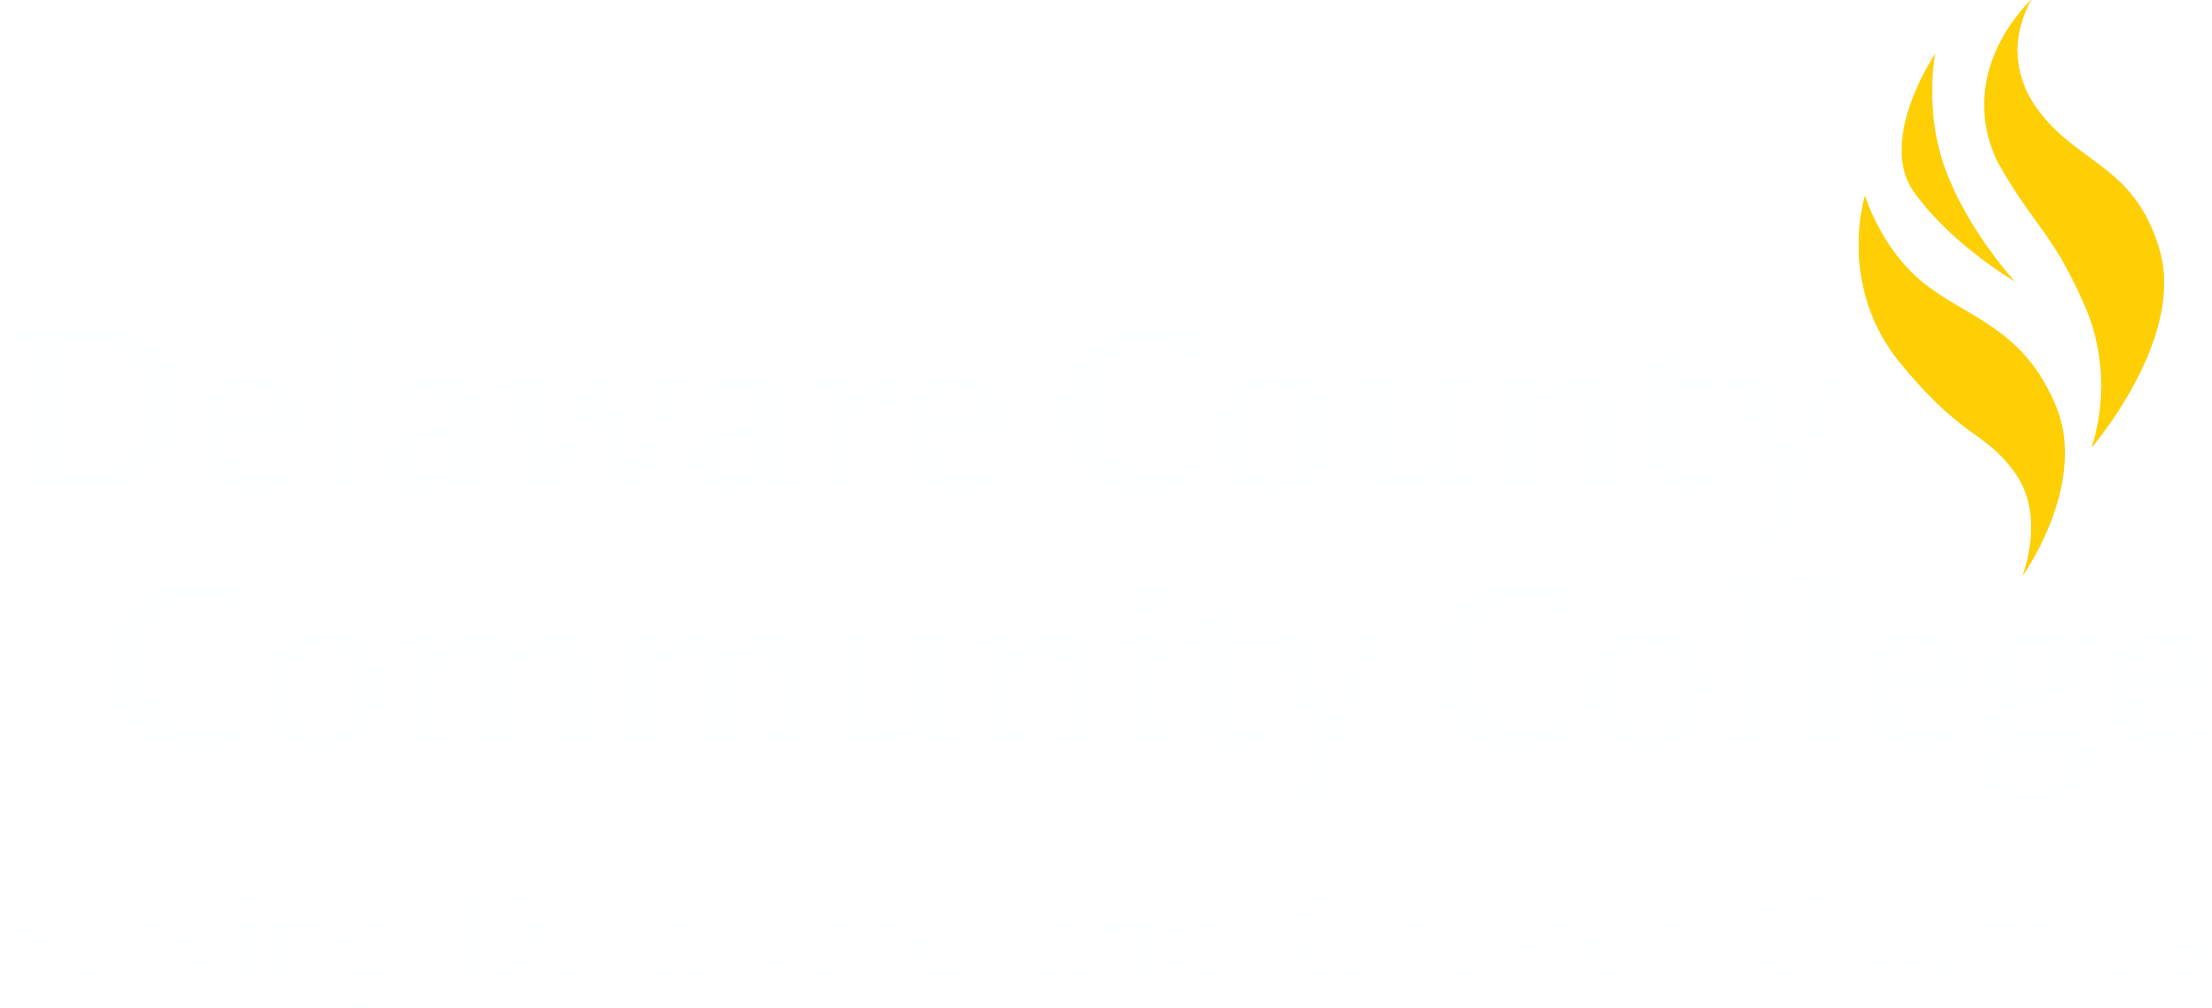 Home - Delaware County Community College pertaining to Delaware County Community College Academic Calendar 2021